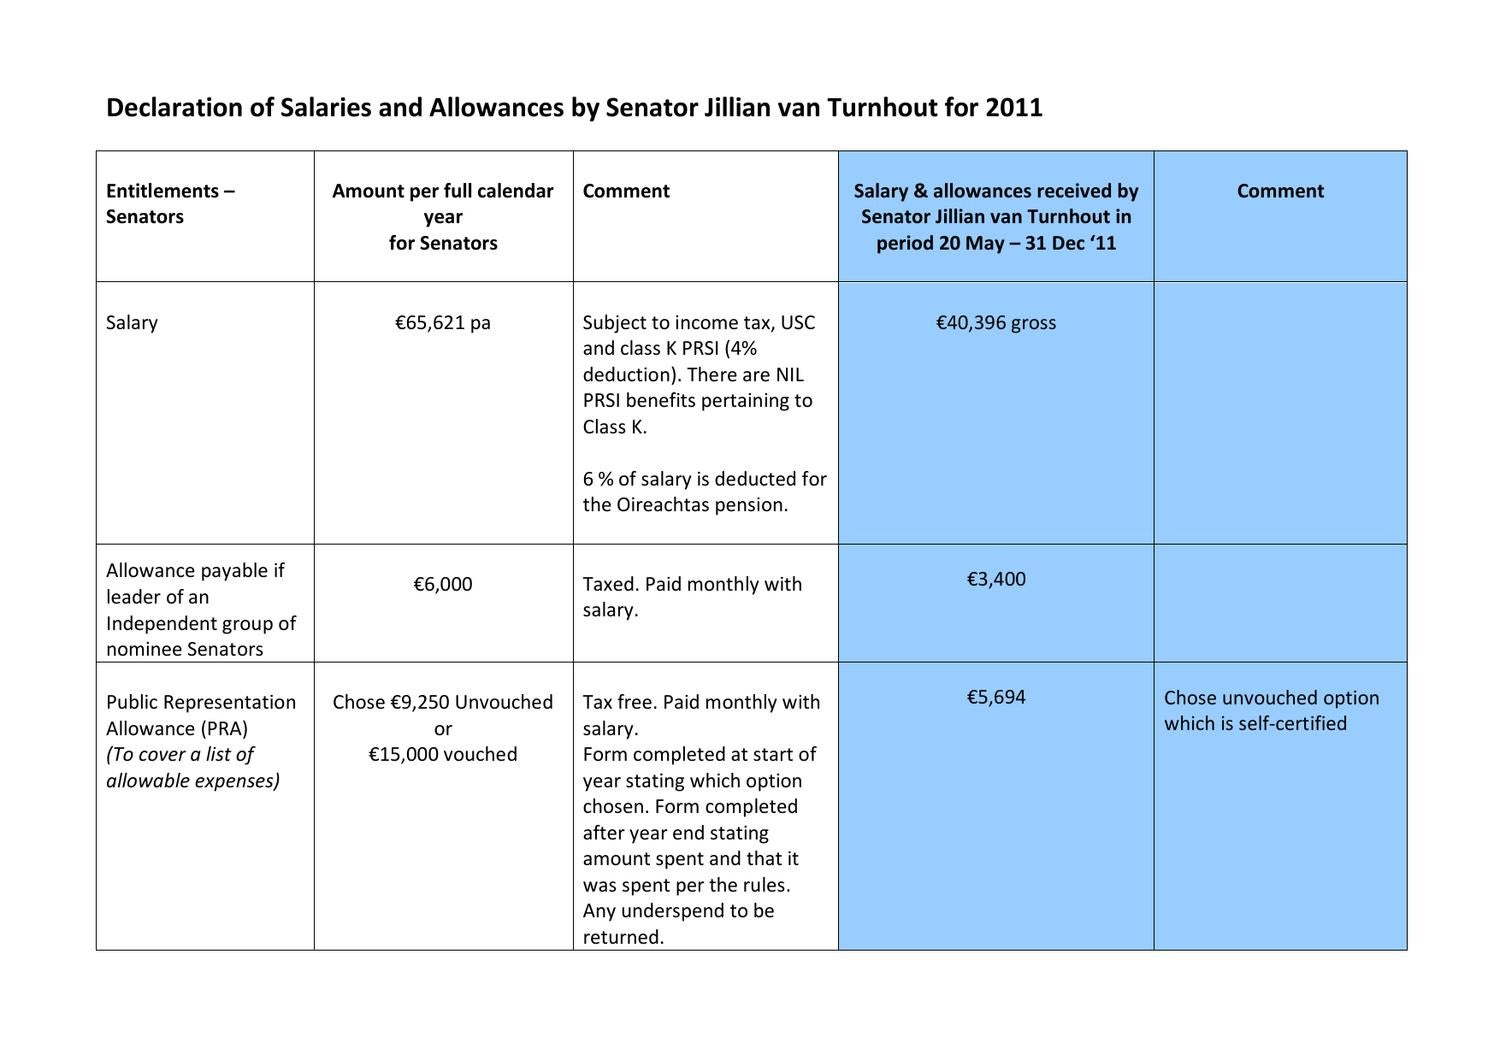 Declaration Of Salaries And Allowances For 2011 By Senator